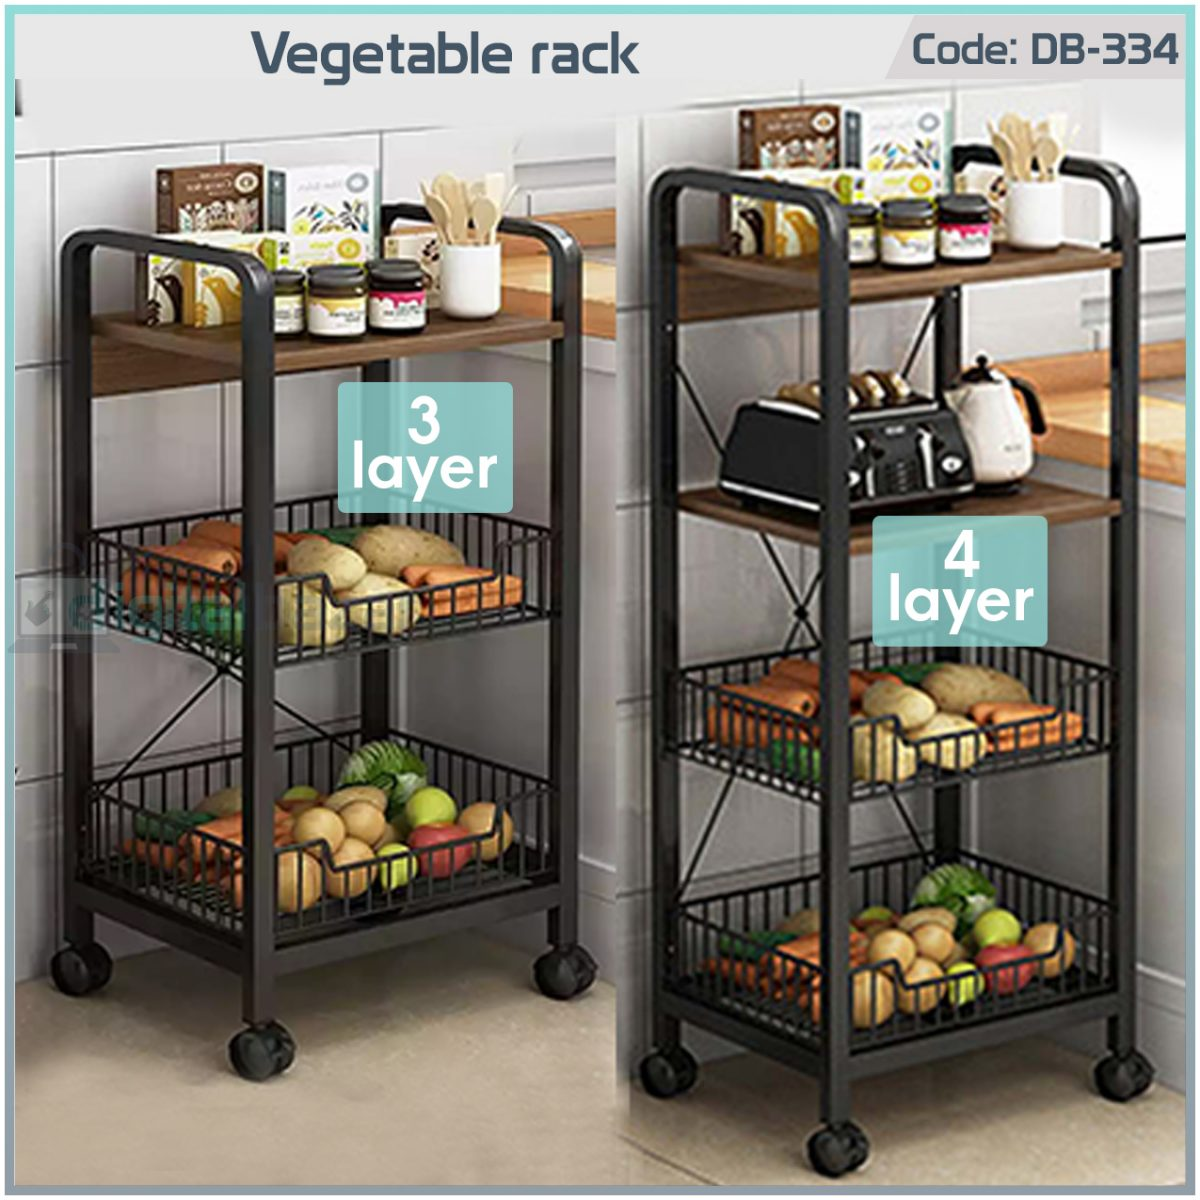 Buy premium quality Vegetable Rack Stand at the best cheapest price in Bangladesh, Order online or visit our Facebook page: digitalbazar.com